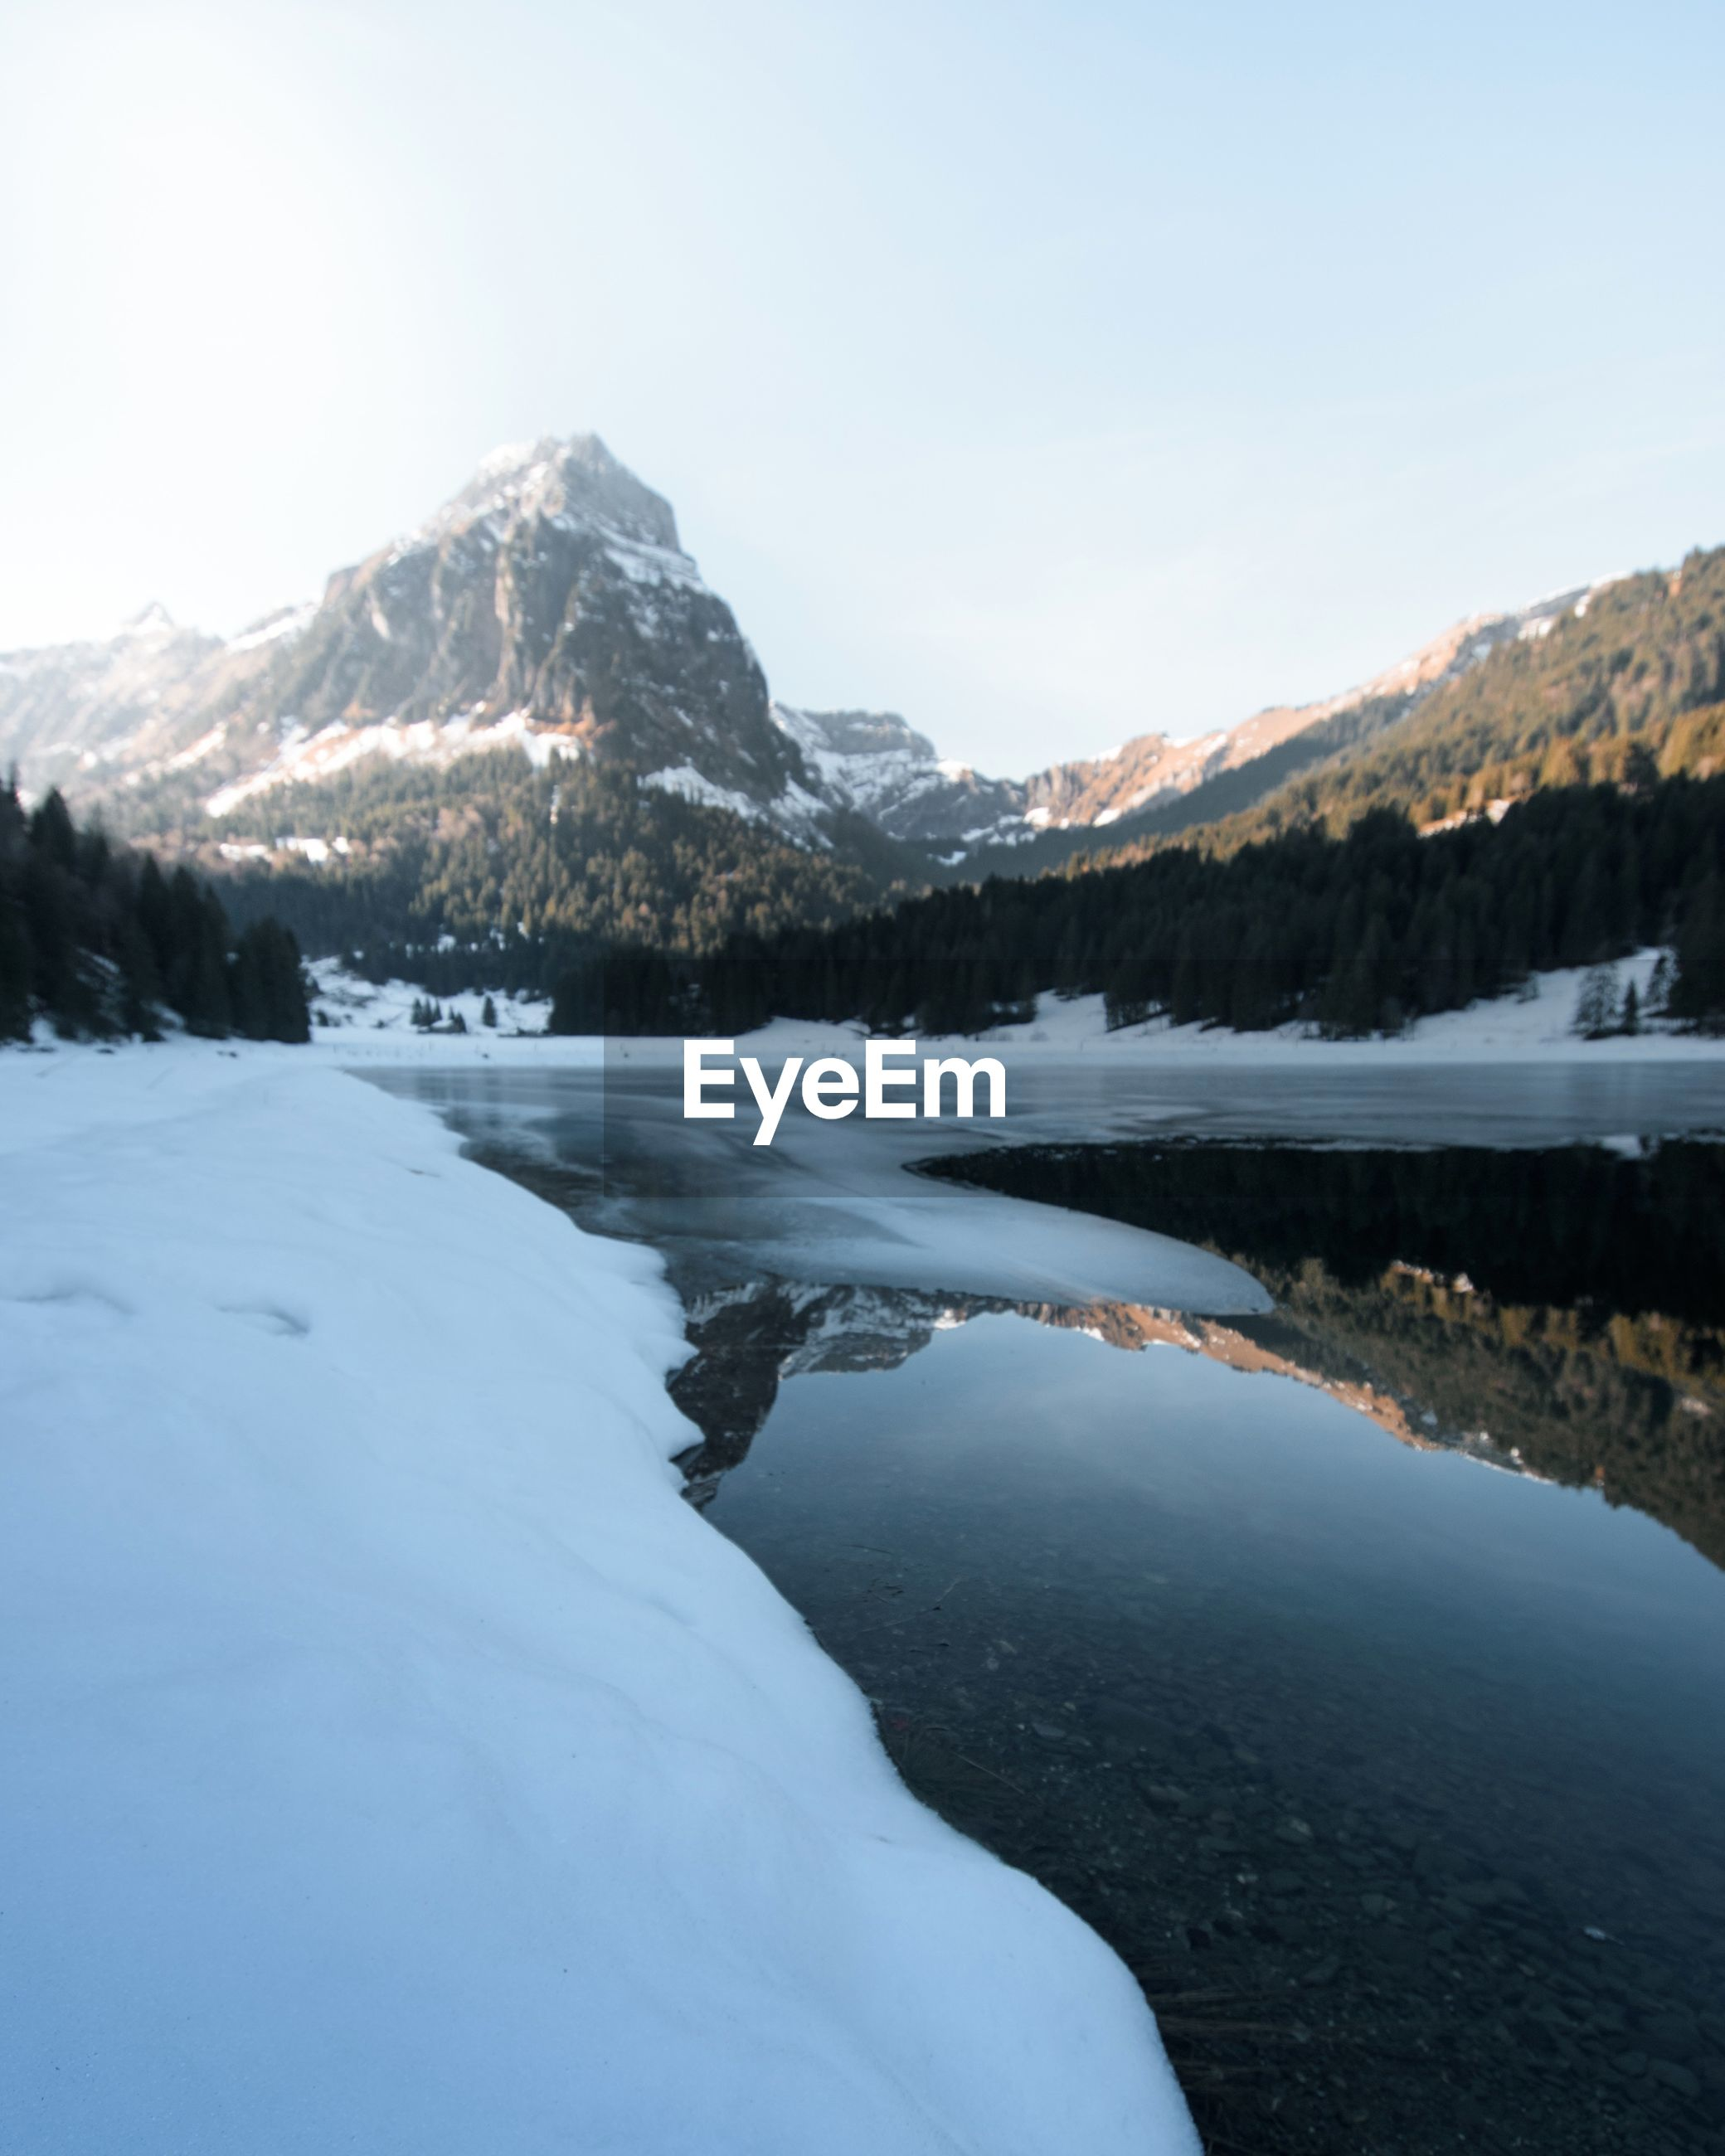 snow, winter, cold temperature, mountain, season, tranquil scene, scenics, tranquility, water, beauty in nature, mountain range, snowcapped mountain, frozen, weather, lake, clear sky, nature, covering, landscape, non-urban scene